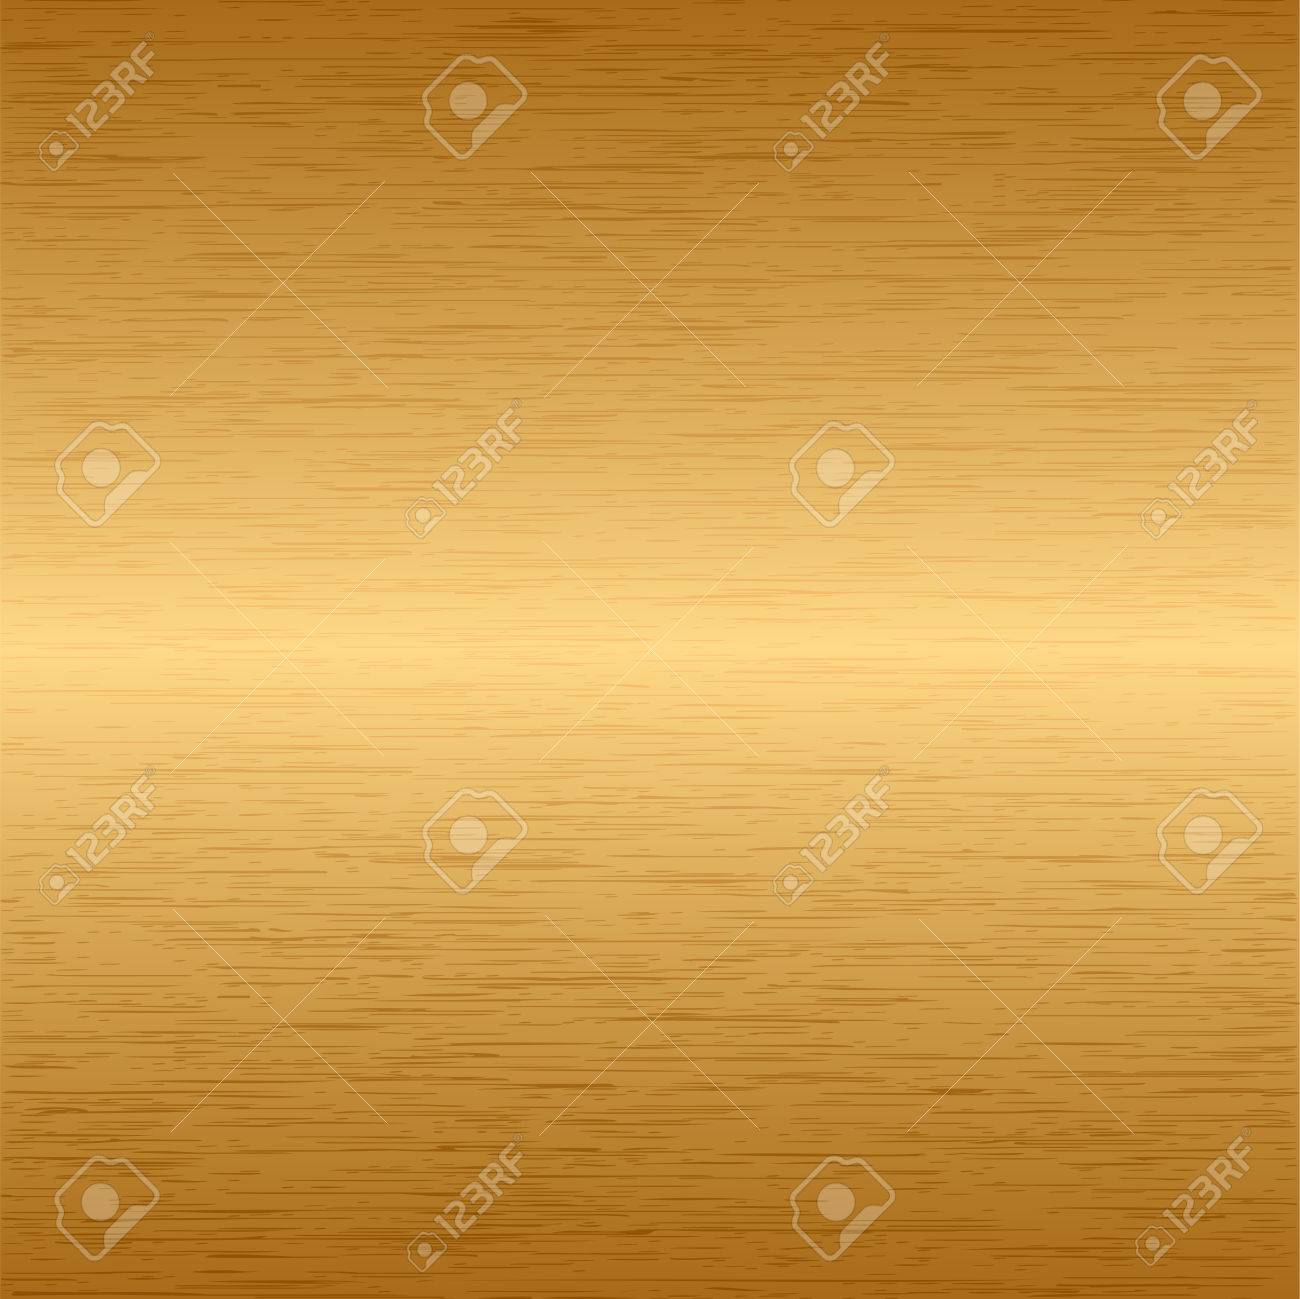 Brushed metallic gold background Stock Vector - 4818713